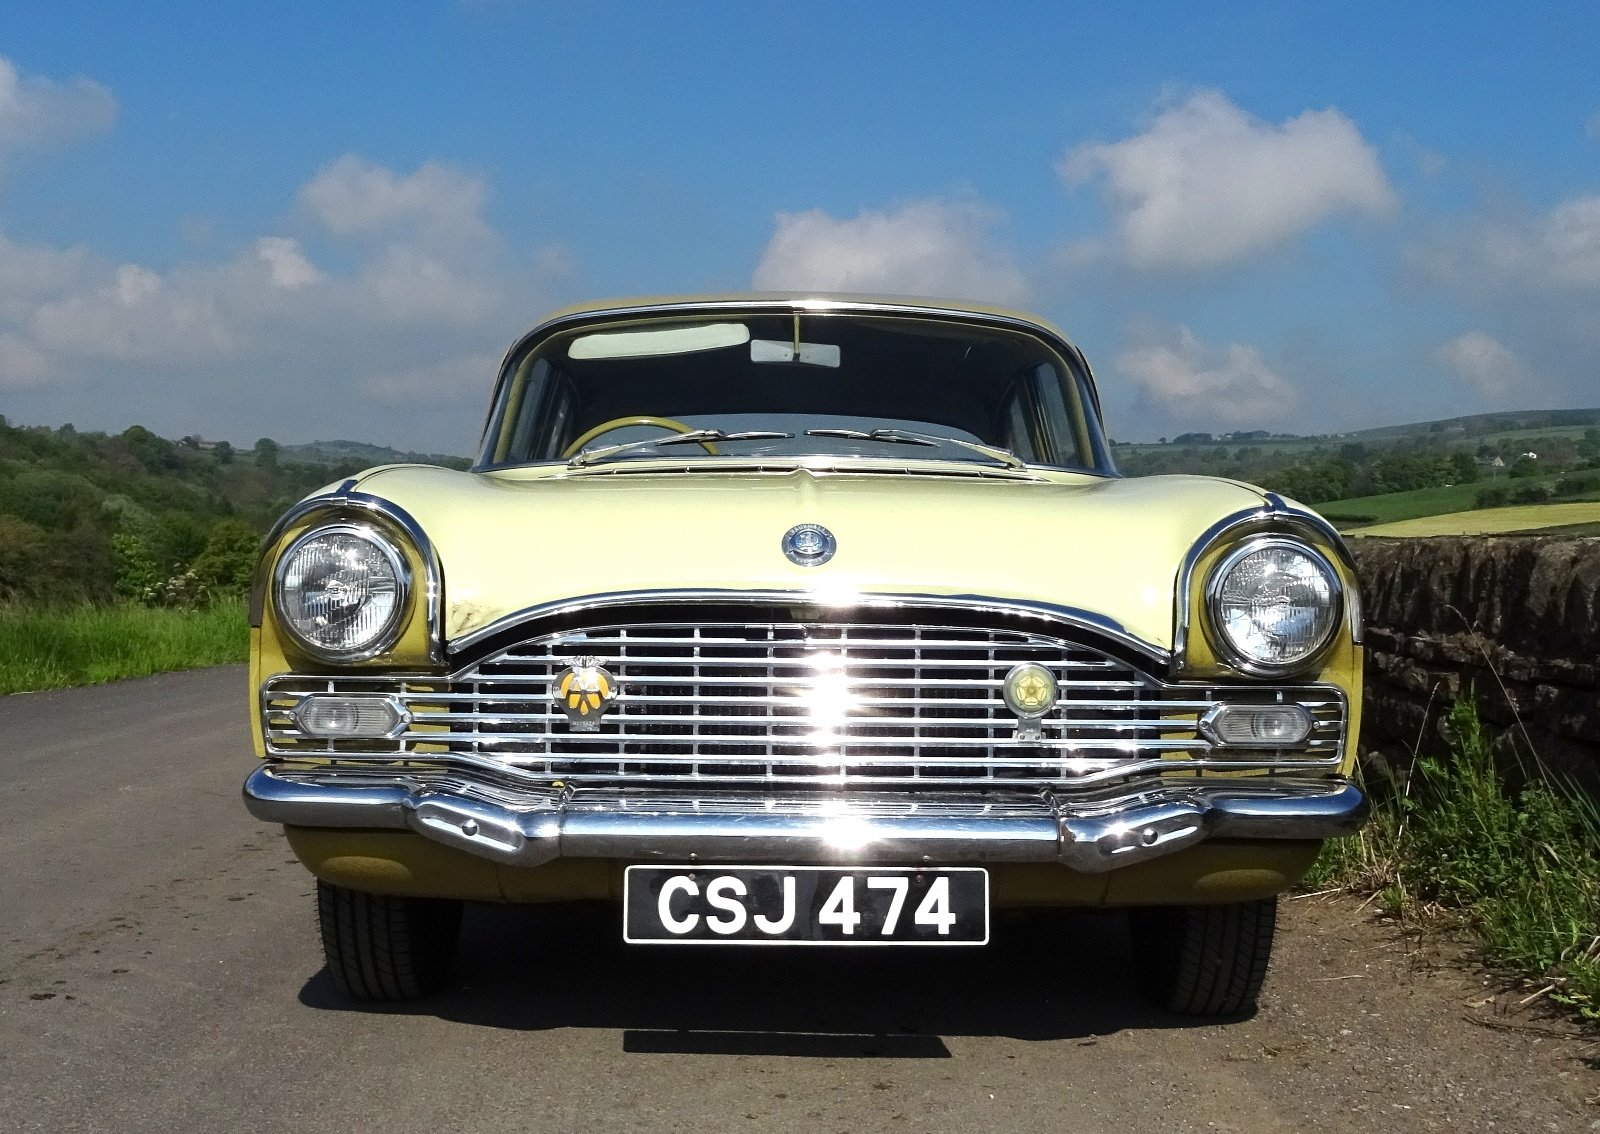 1961 VAUXHALL CRESTA STYLISH CLASSIC RARE COLOUR SCHEME AND SEATS For Sale (picture 3 of 6)